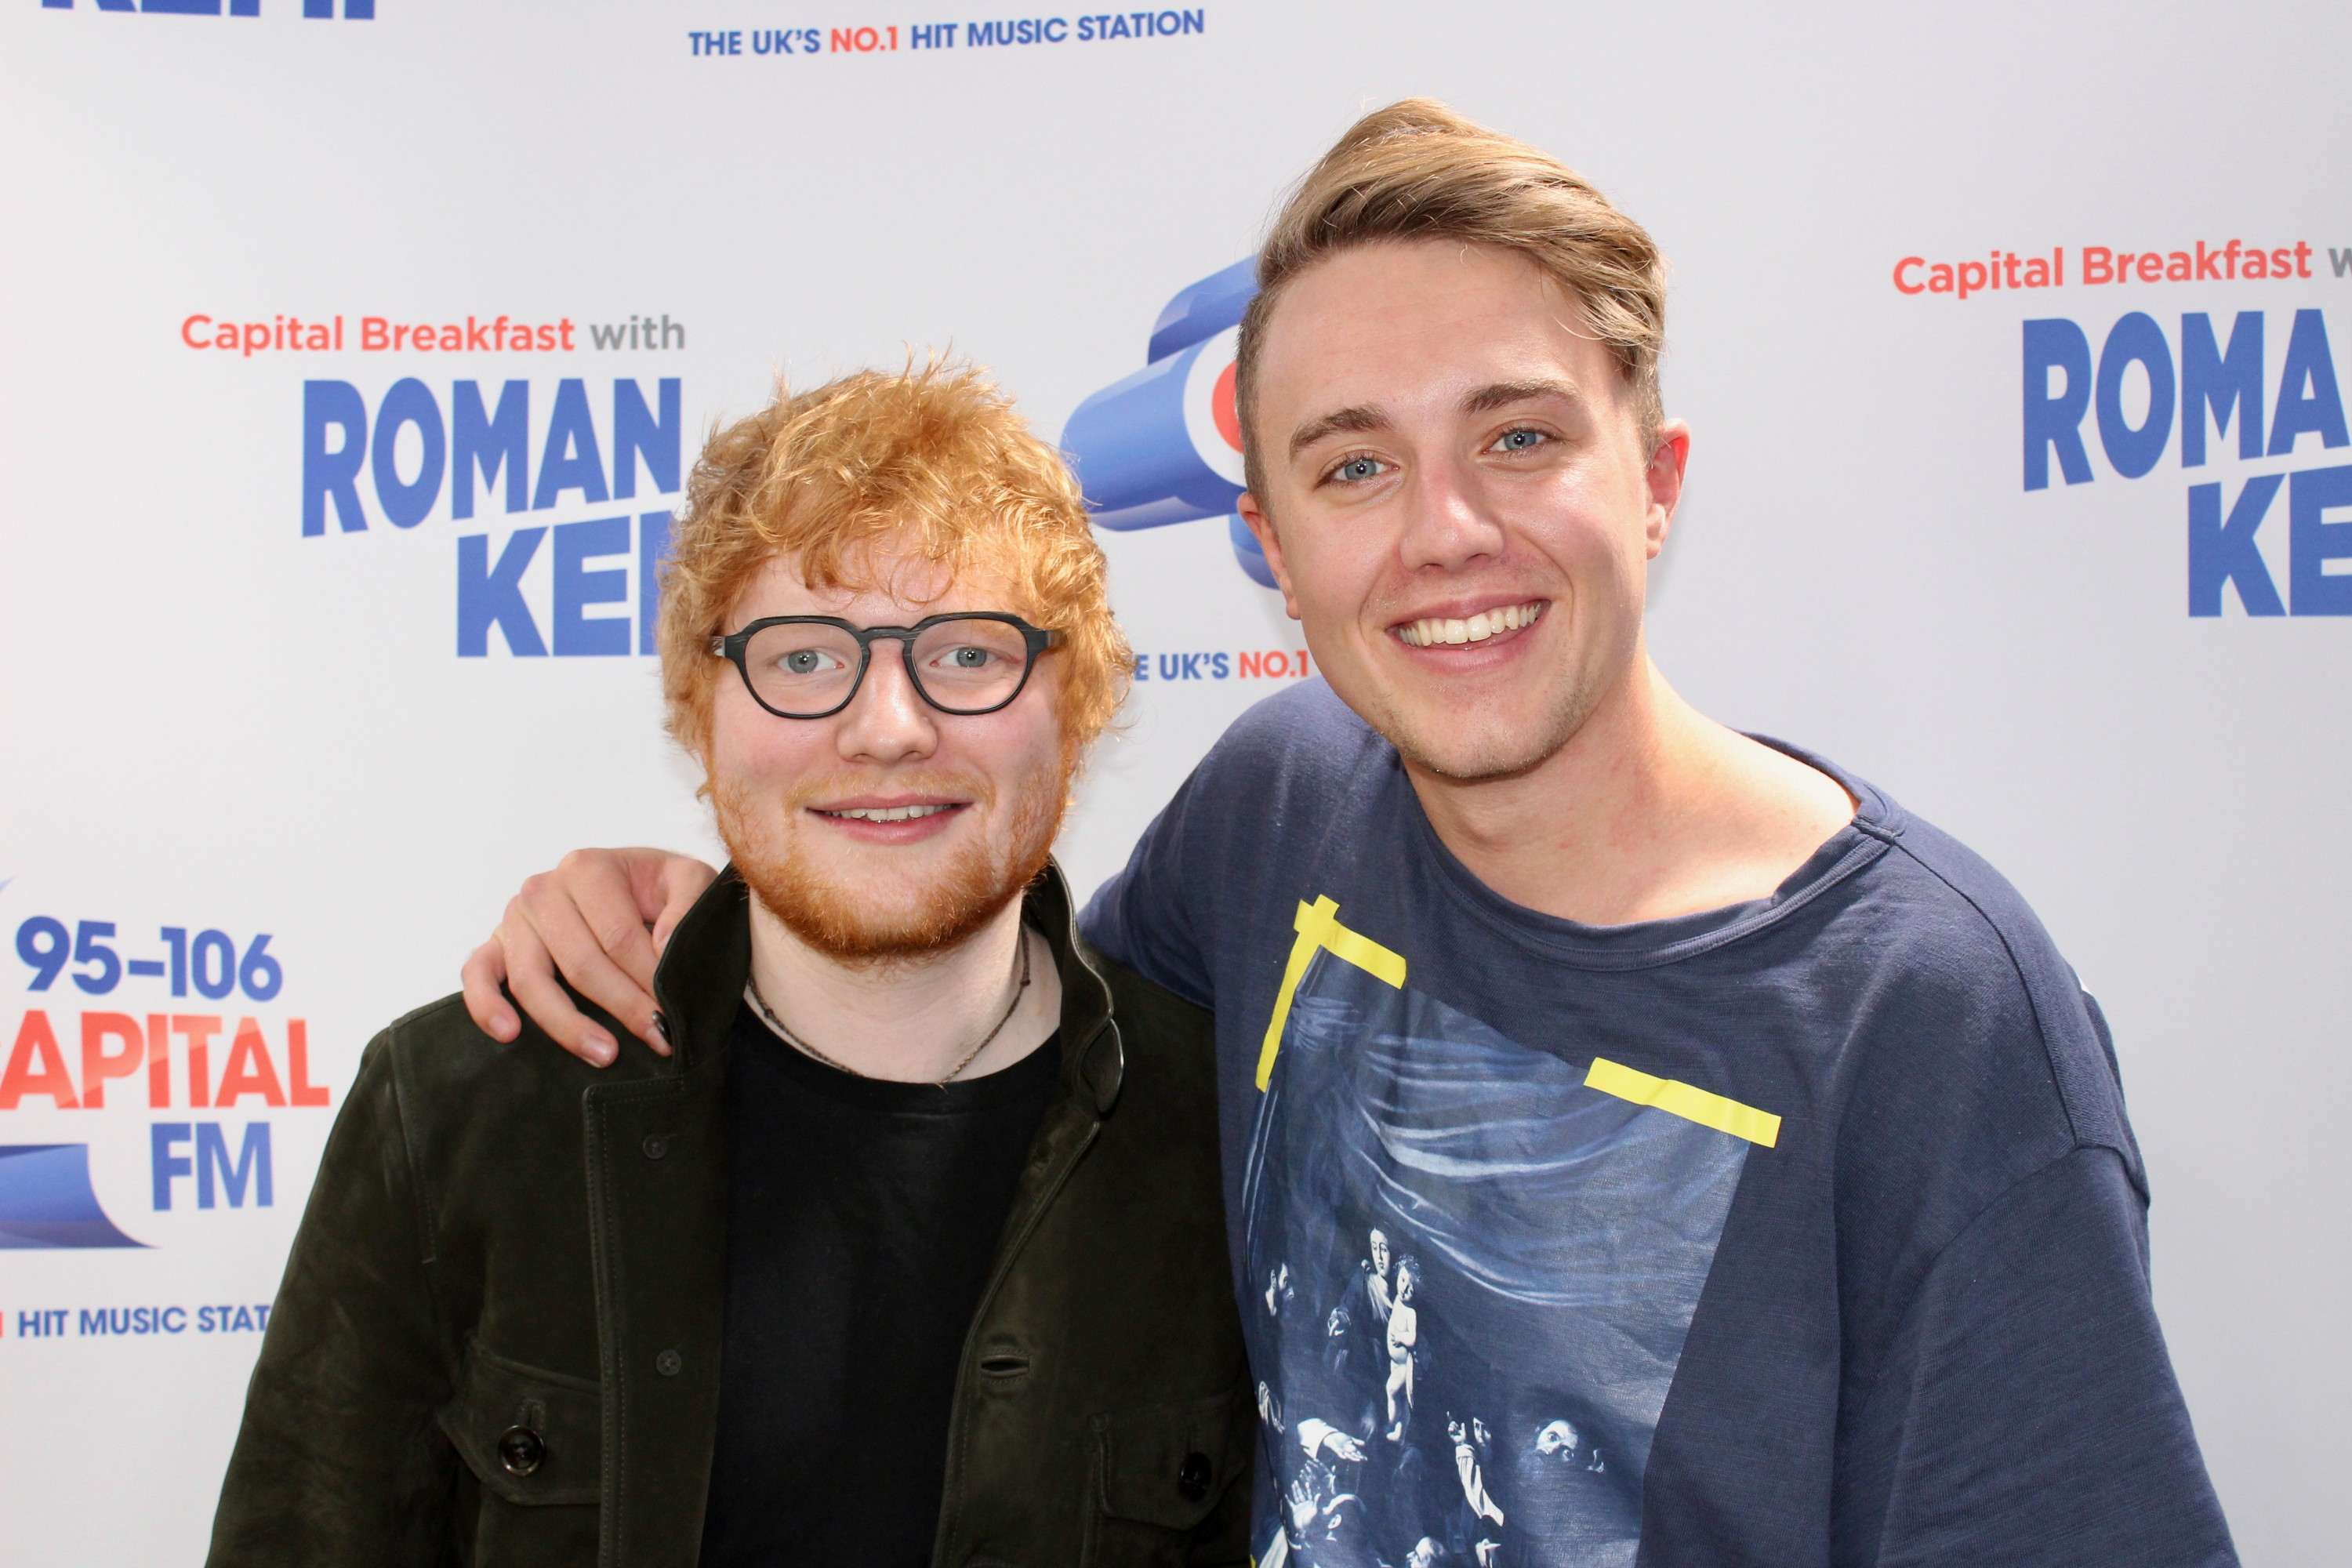 Ed Sheeran on Capital Breakfast w/ Roman Kemp